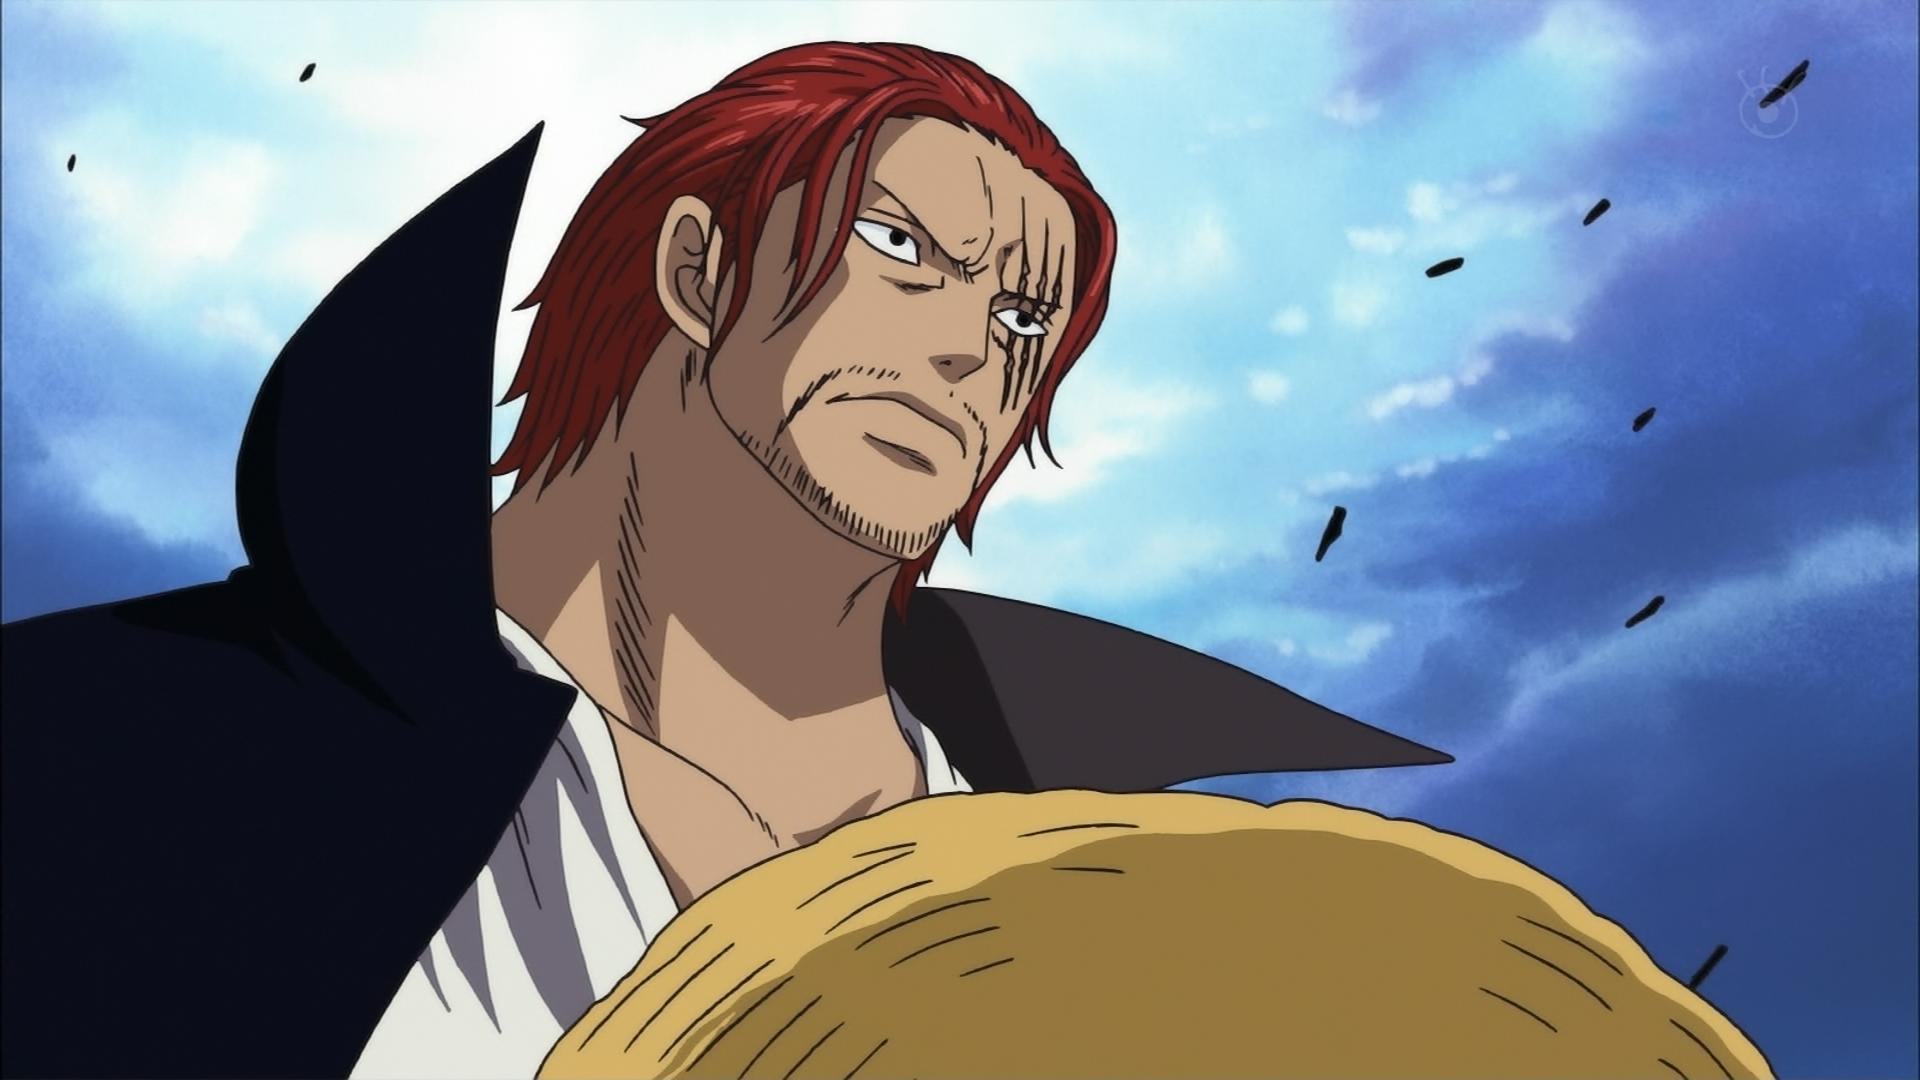 Shanks Wallpapers High Definition 1920x1080 px